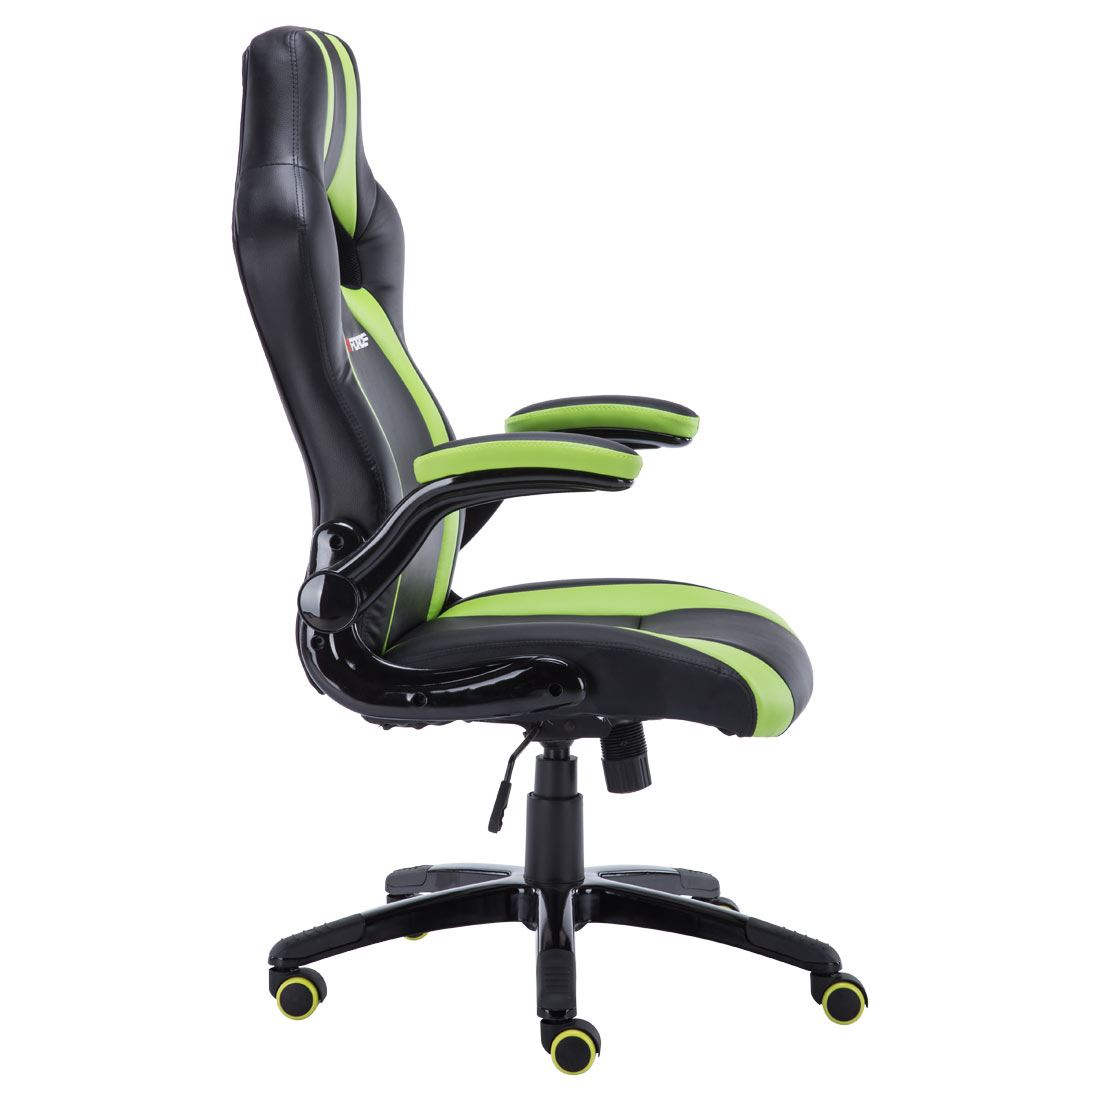 GTFORCE-ROADSTER-2-SPORT-RACING-CAR-OFFICE-CHAIR-LEATHER-ADJUSTABLE-GAMING-DESK